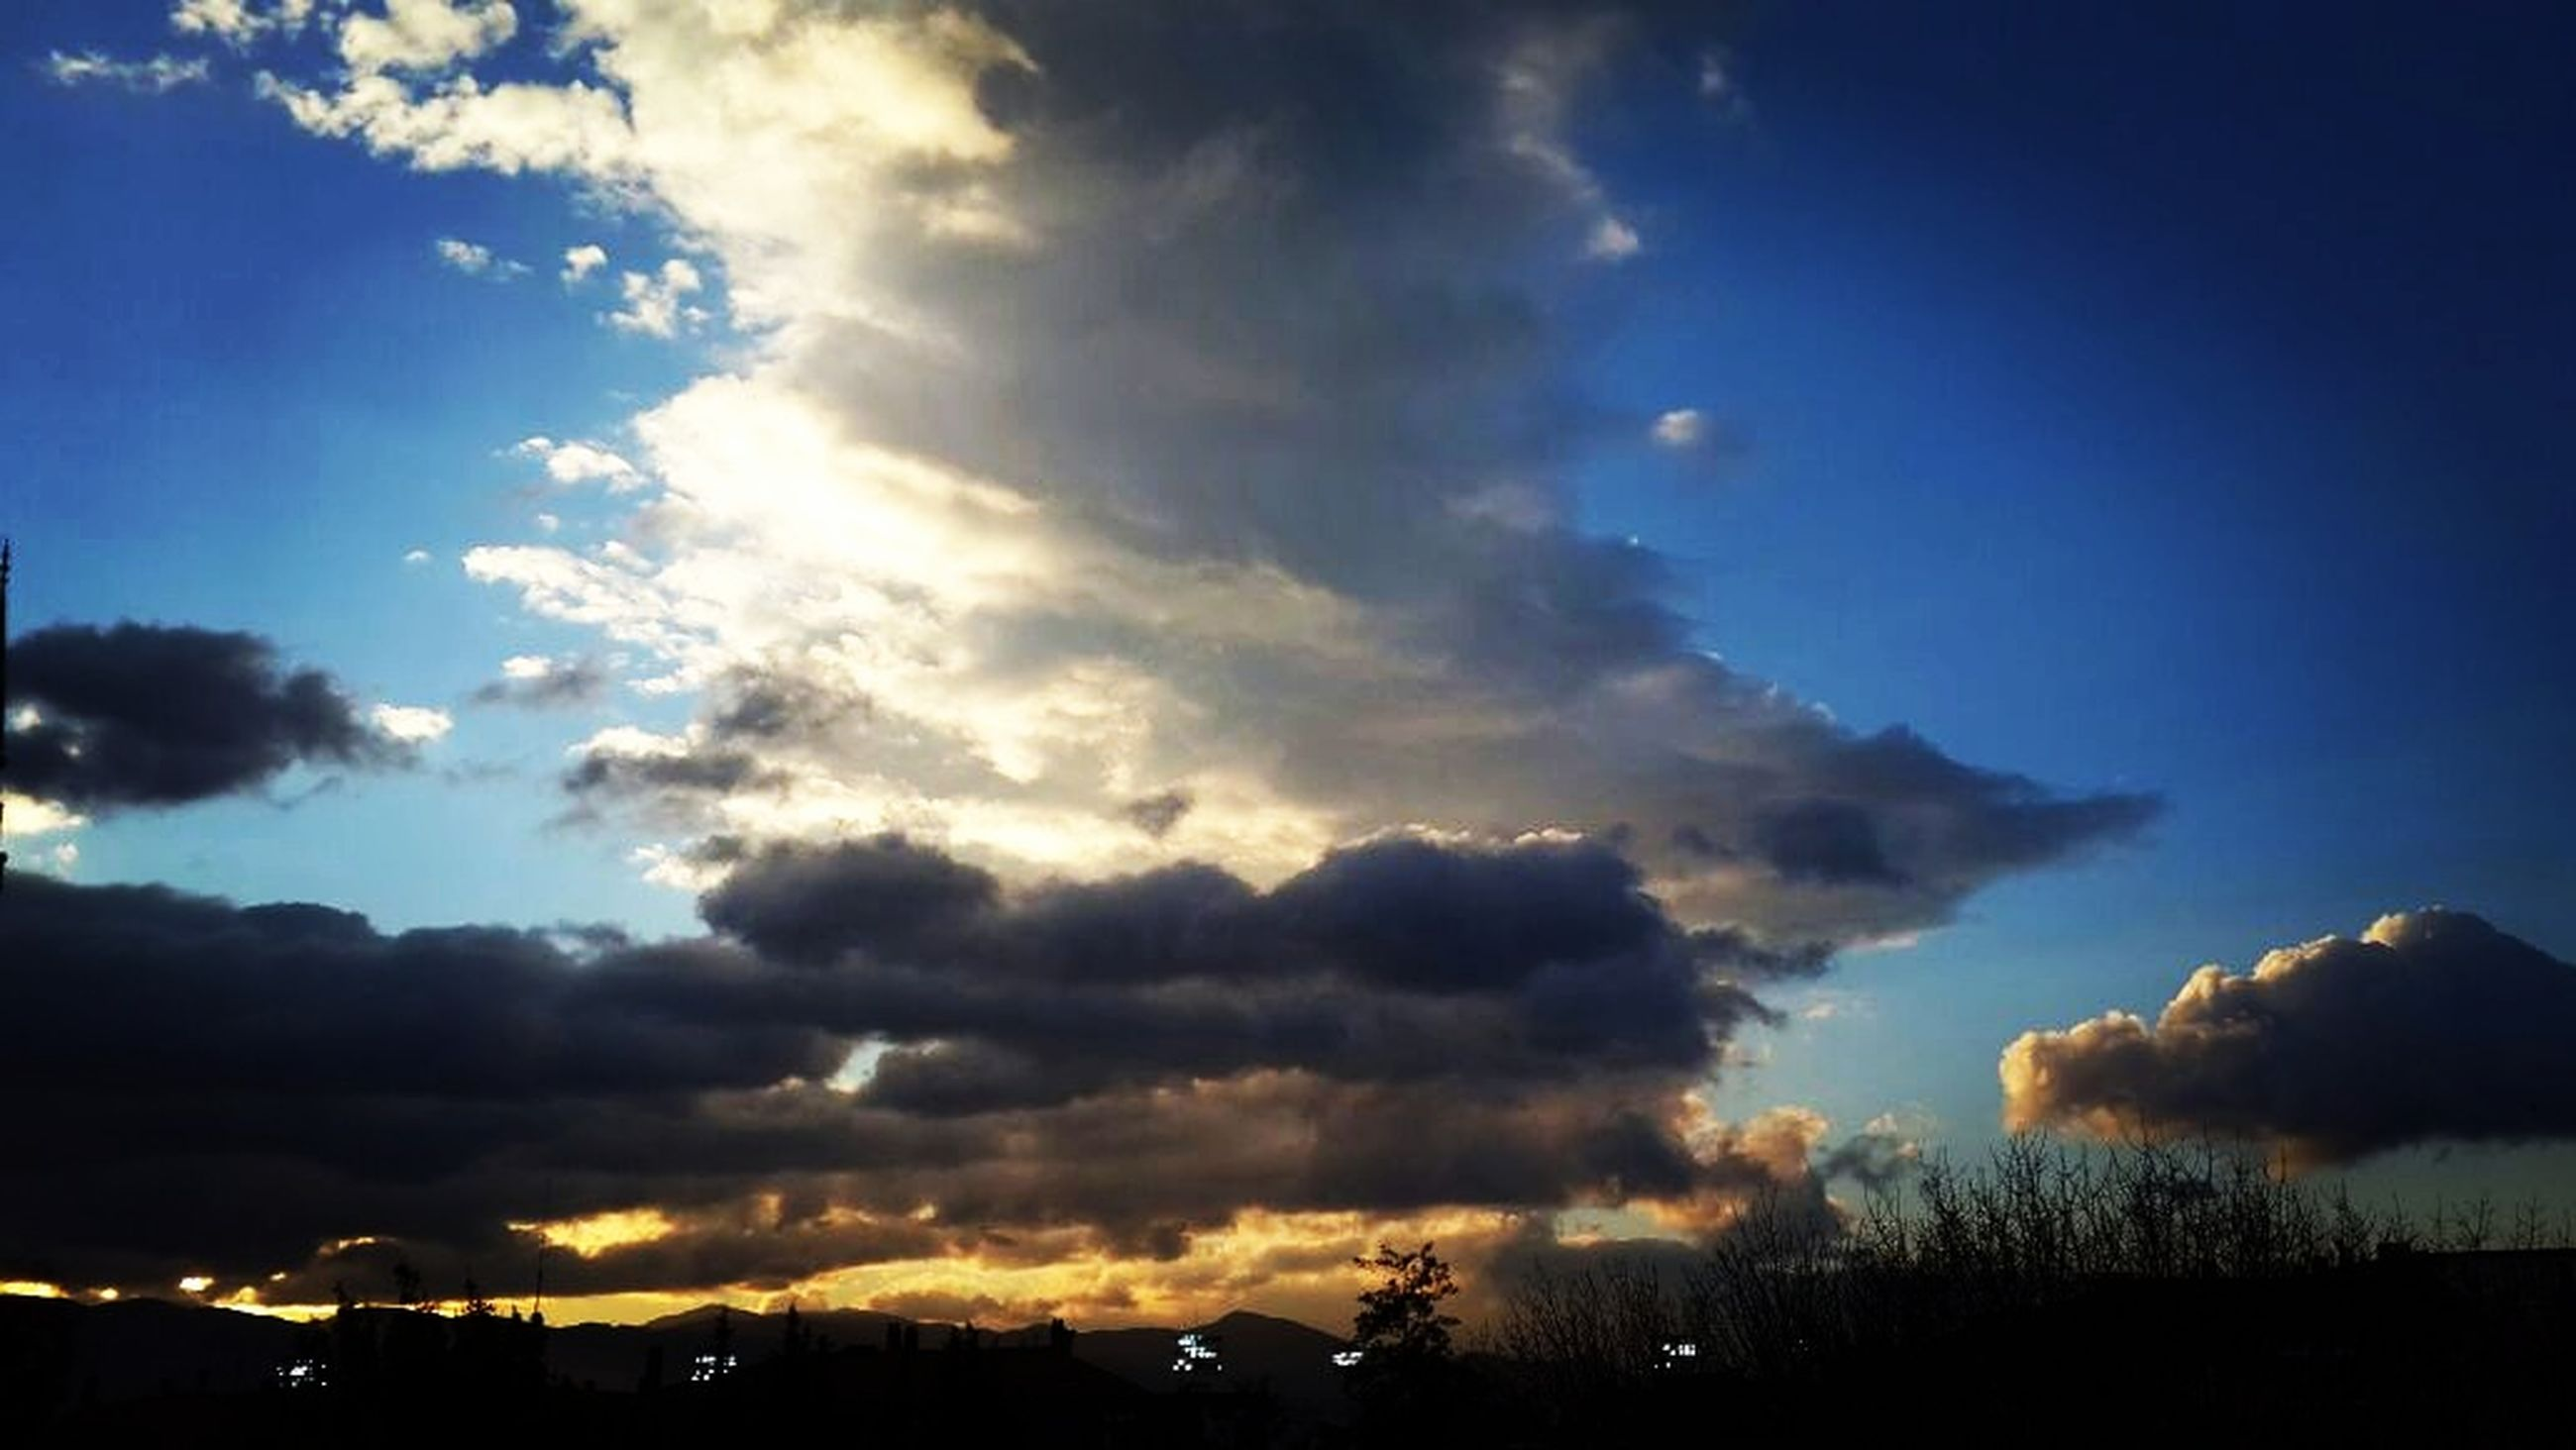 sky, cloud - sky, beauty in nature, sunbeam, scenics, nature, idyllic, sunset, outdoors, no people, silhouette, tranquility, storm cloud, day